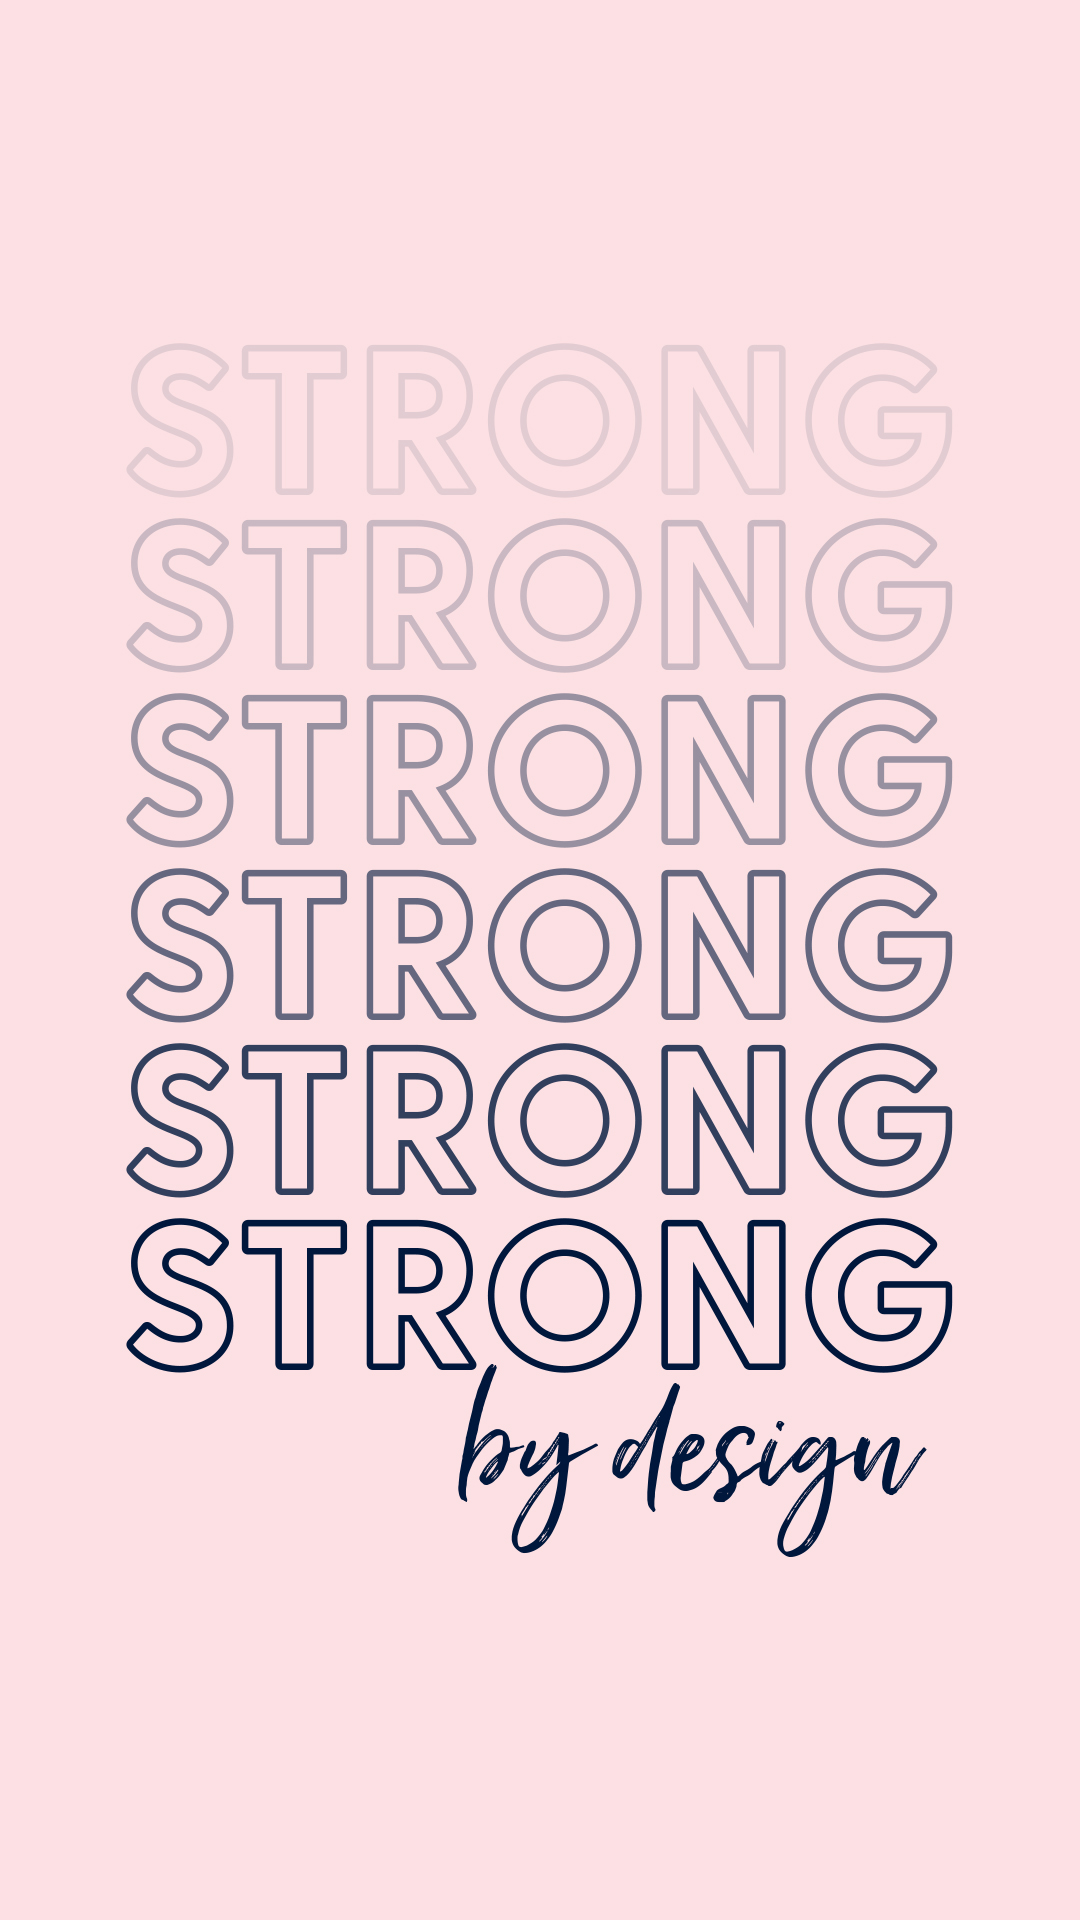 strong by design